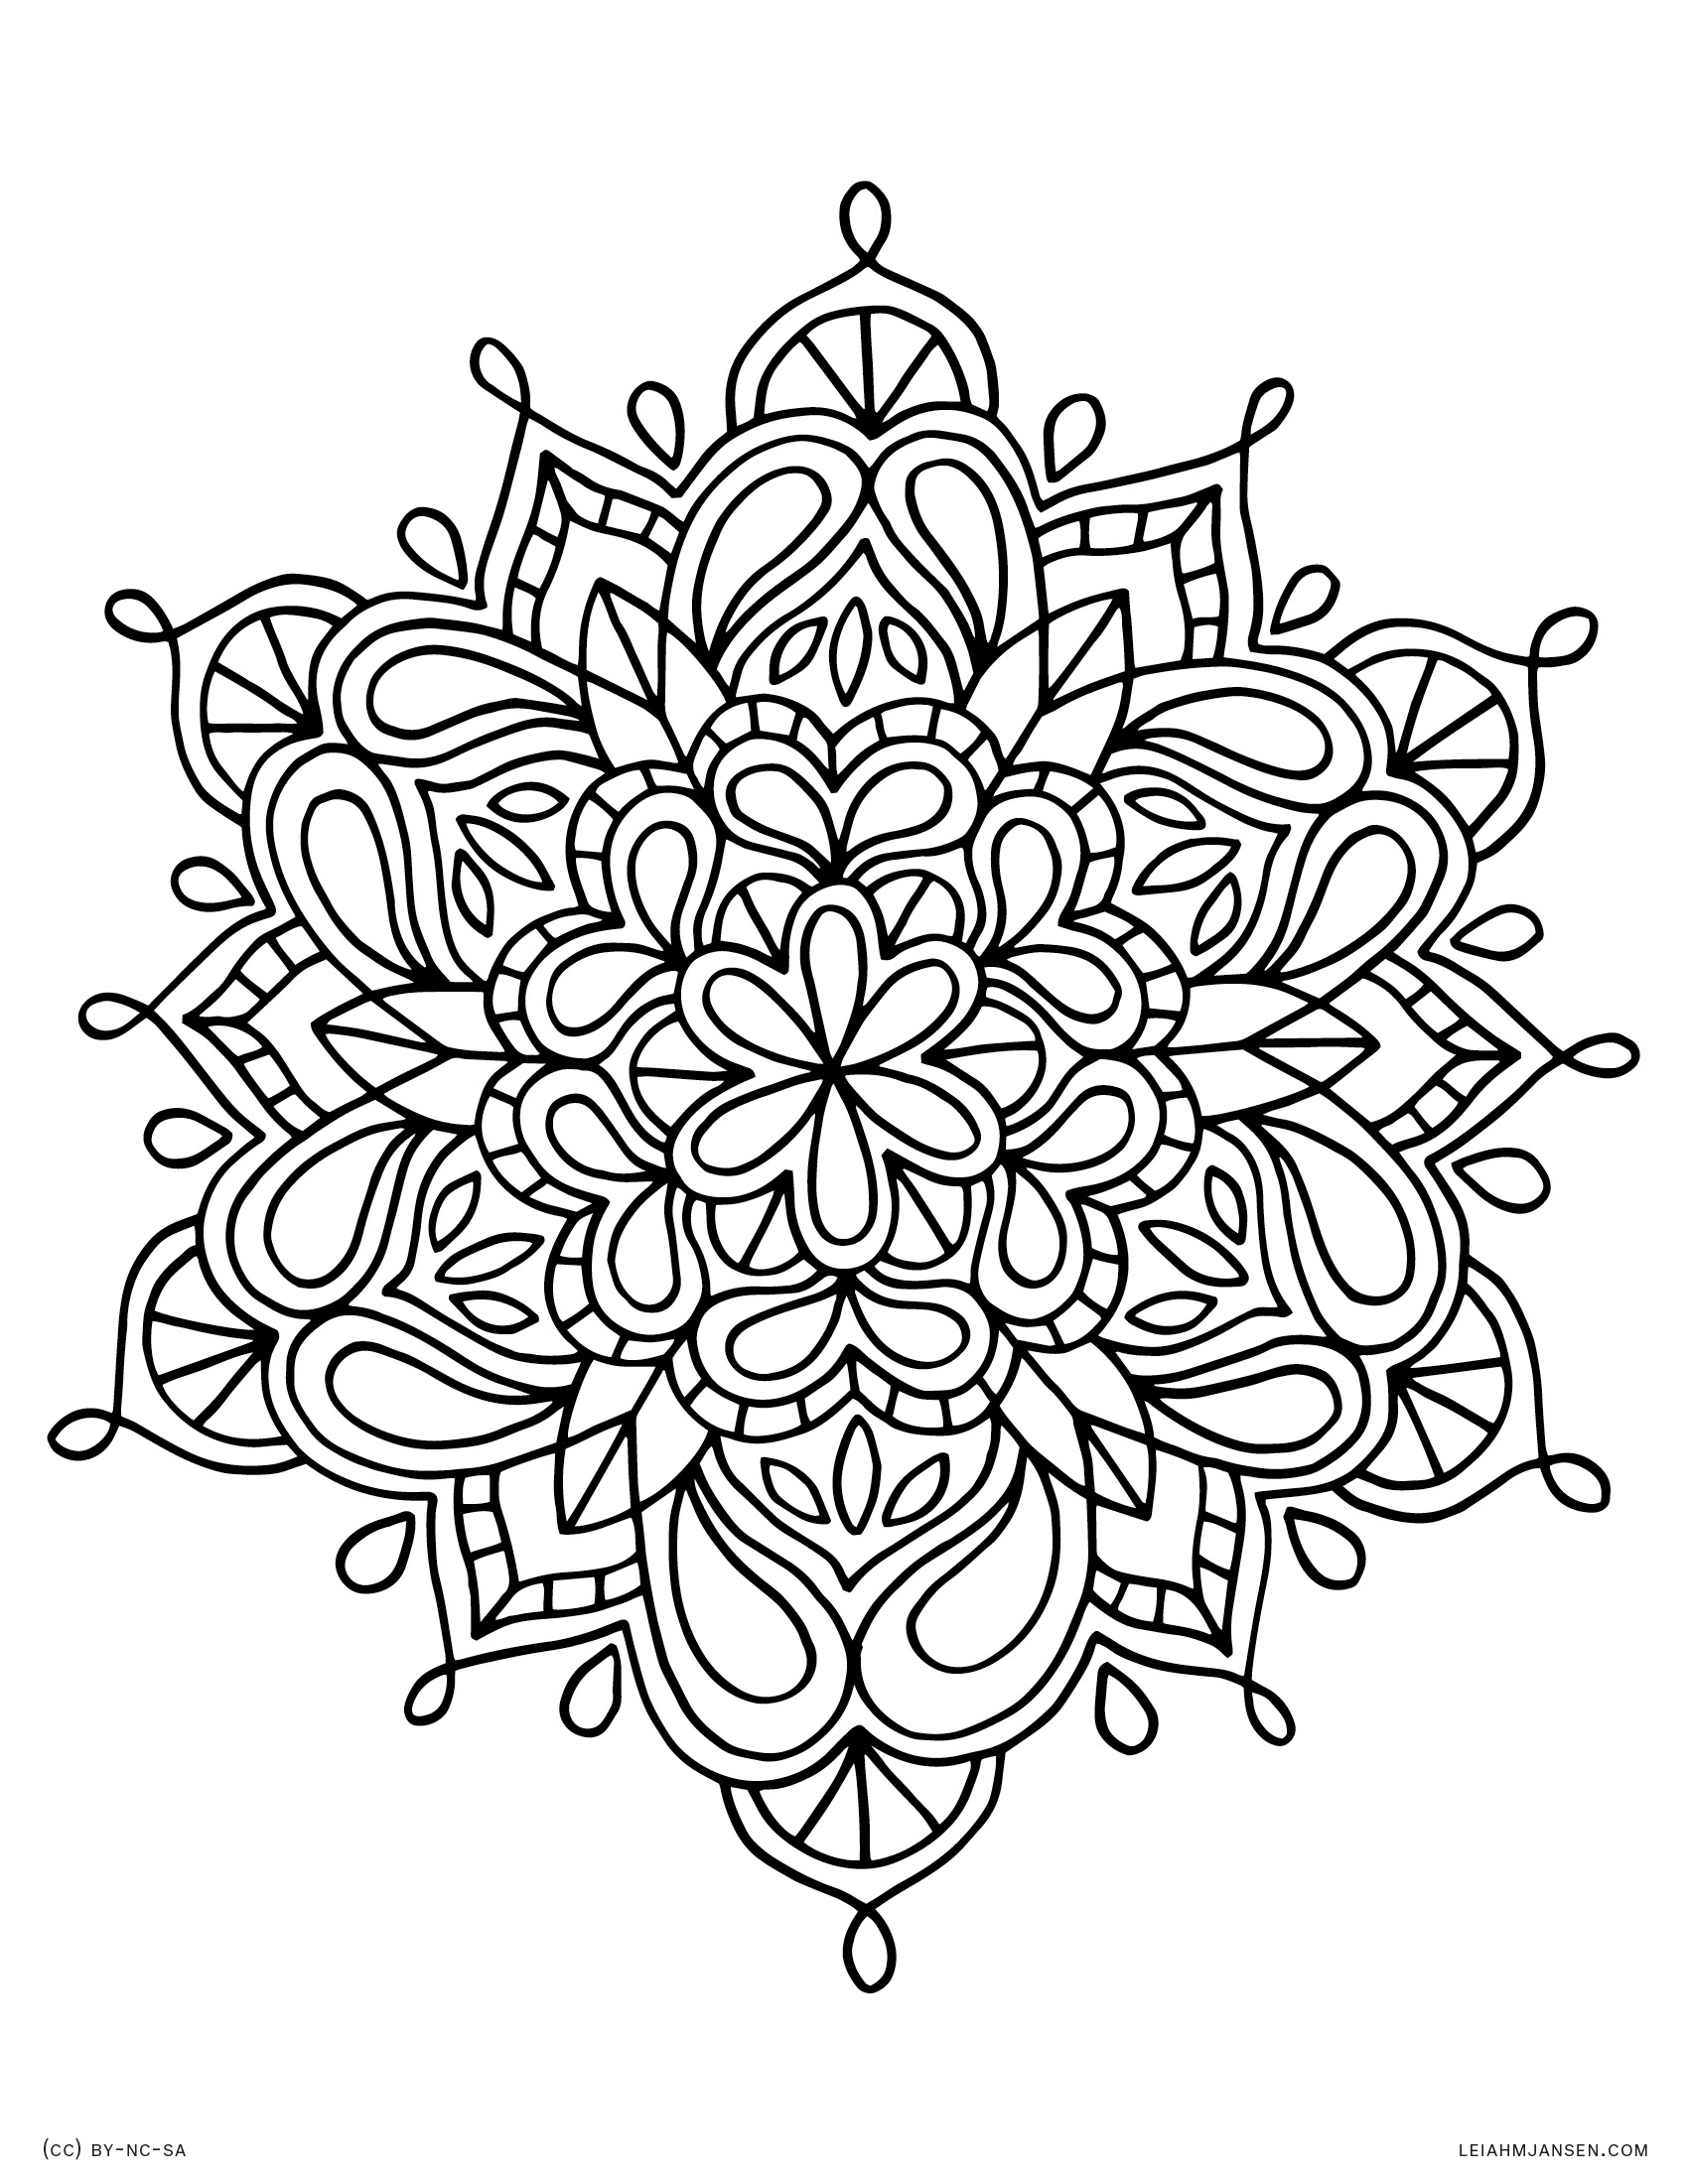 My Room Coloring Pages Coloring Pages